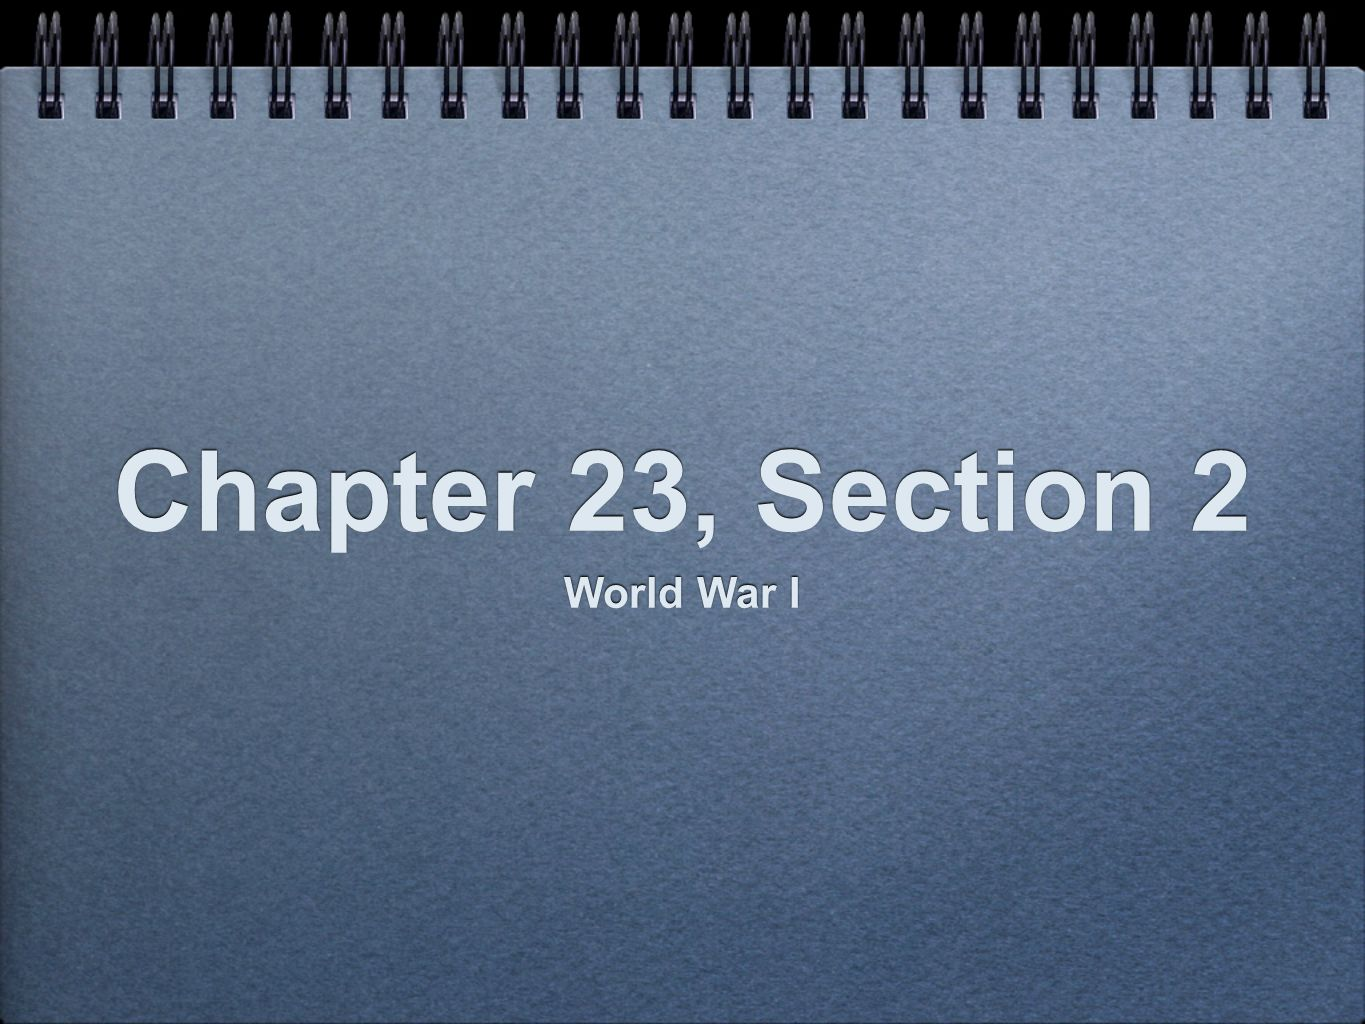 Chapter 23, Section 2 World War I